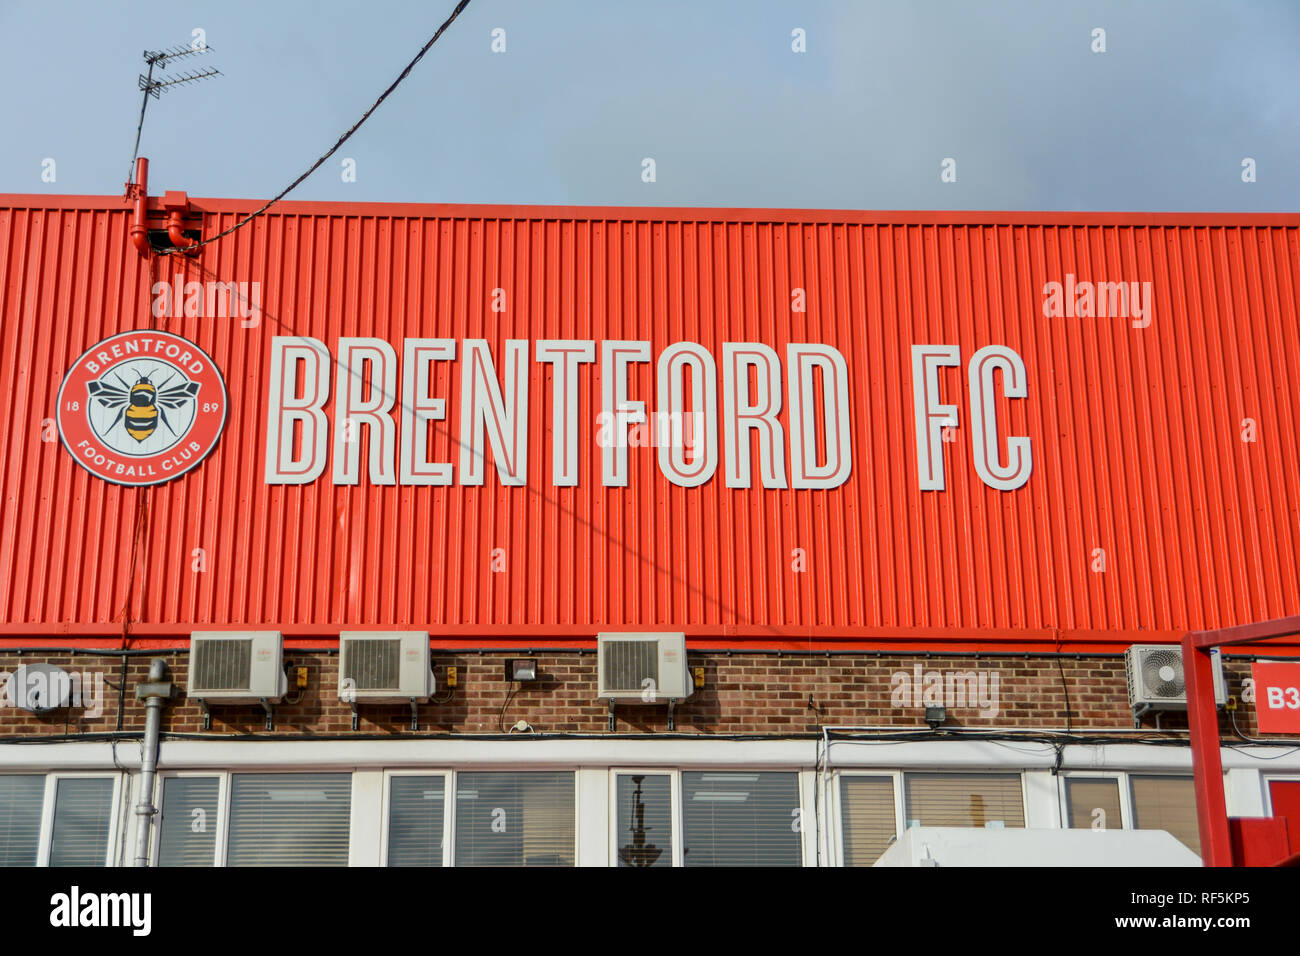 Brentford gillingham betting sites jersey stakes bettingadvice